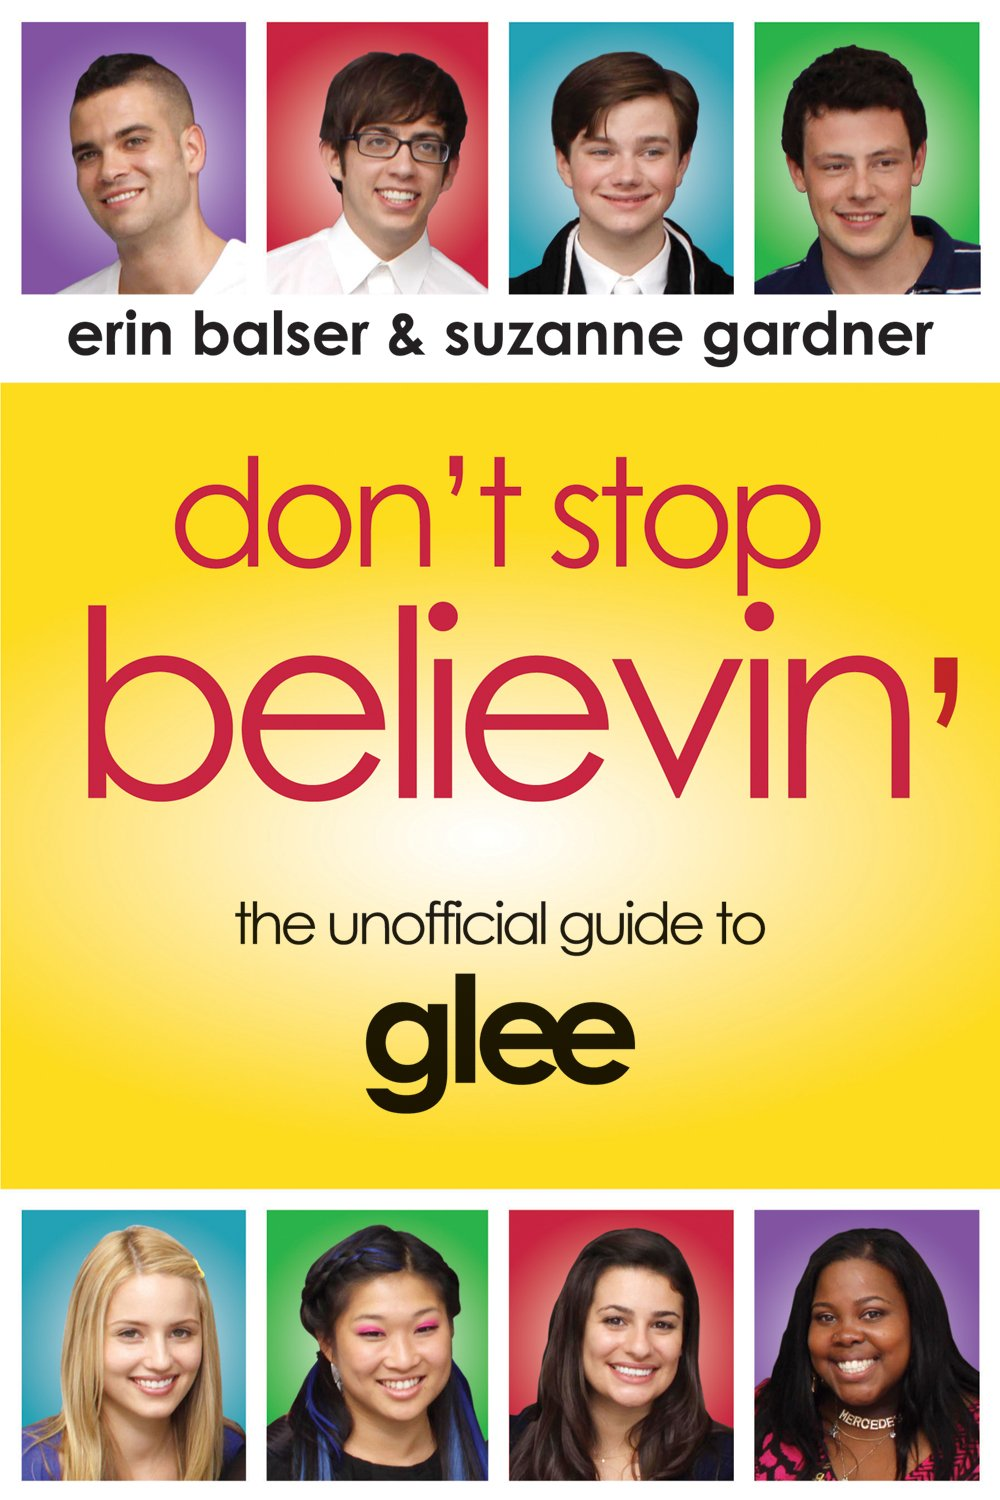 Don't Stop Believin': The Unofficial Guide to Glee: Erin Balser, Suzanne  Gardner: 9781550229387: Amazon.com: Books